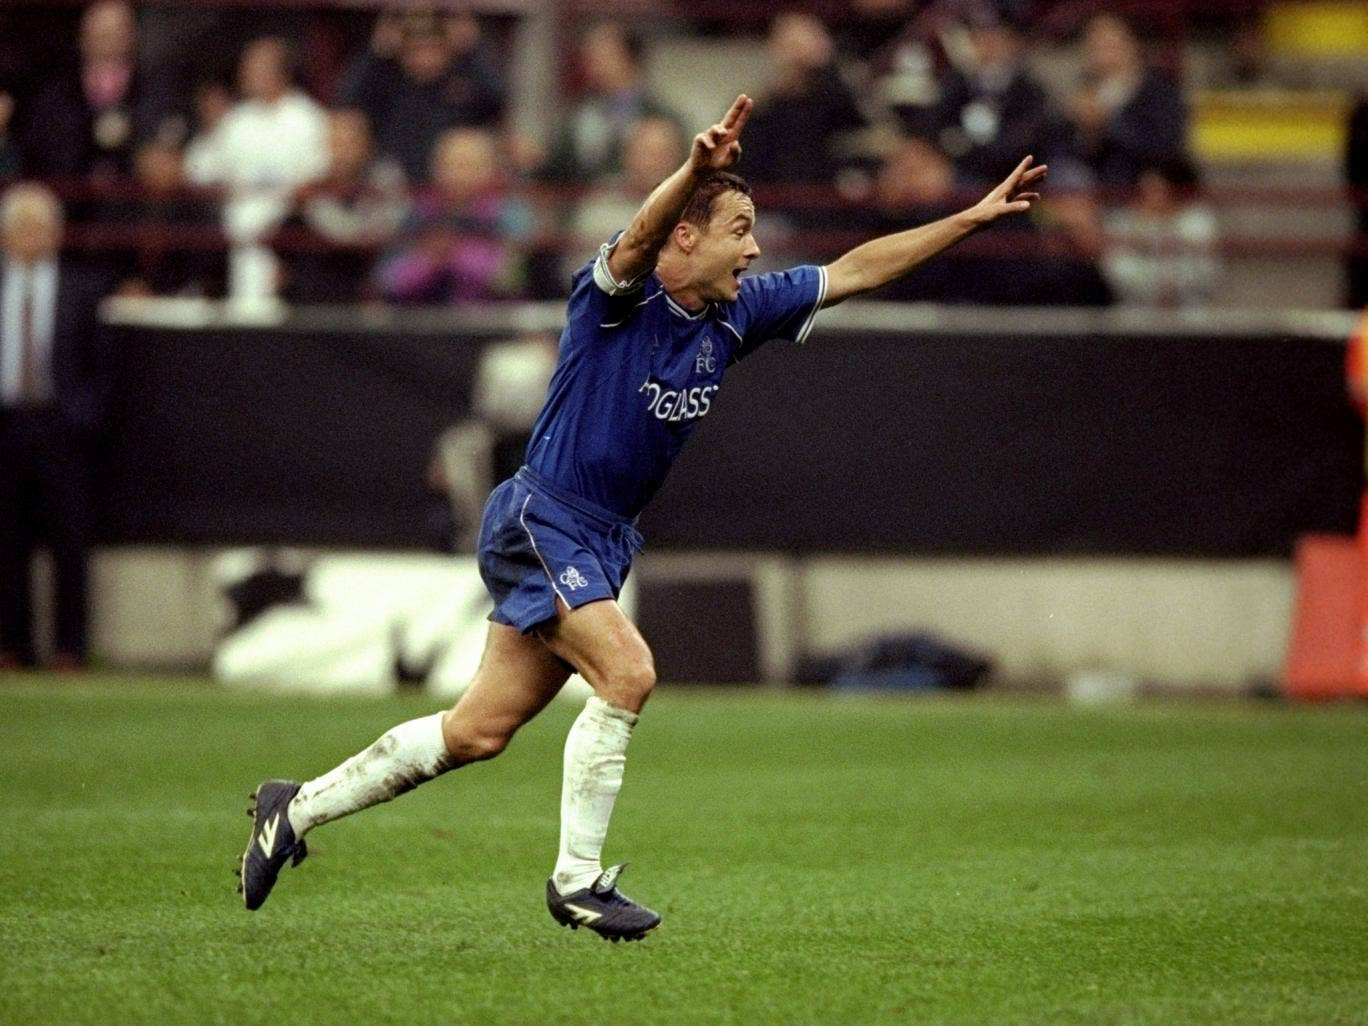 Di Matteo set up Dennis Wise to equalise against AC Milan at the San Siro in 1999